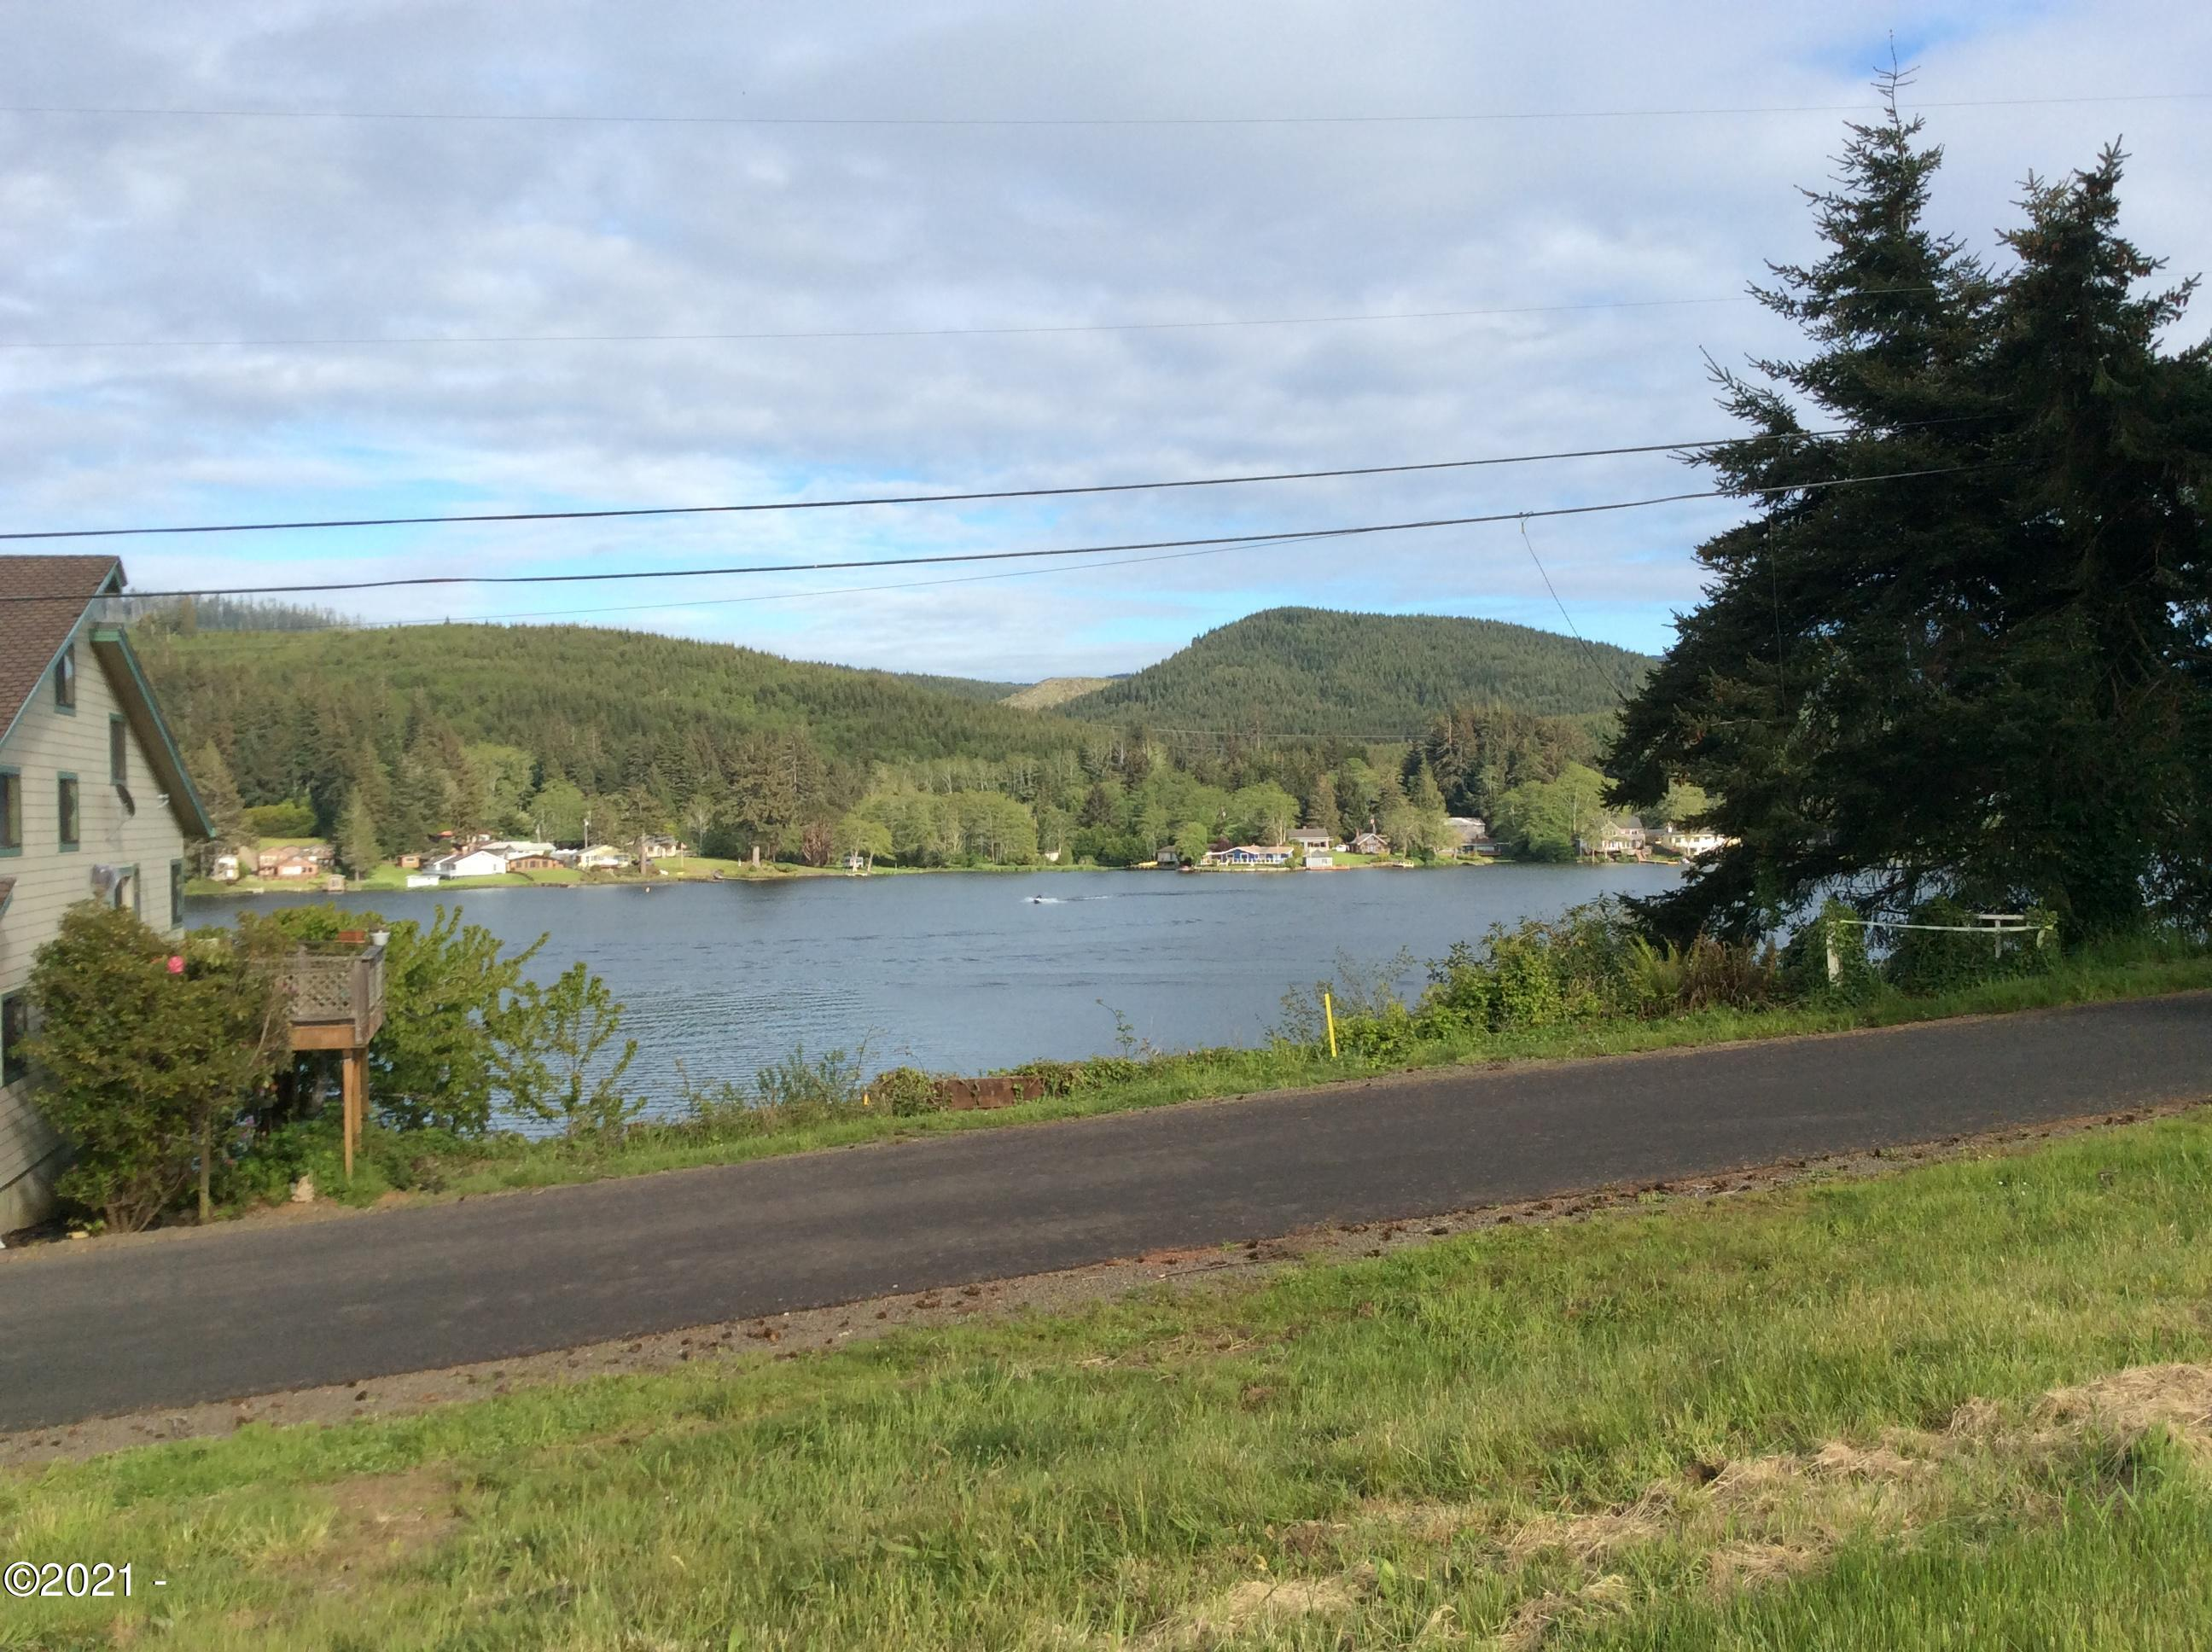 1445 NE Lake Dr, Lincoln City, OR 97367 - 1) Lake view across street from lots